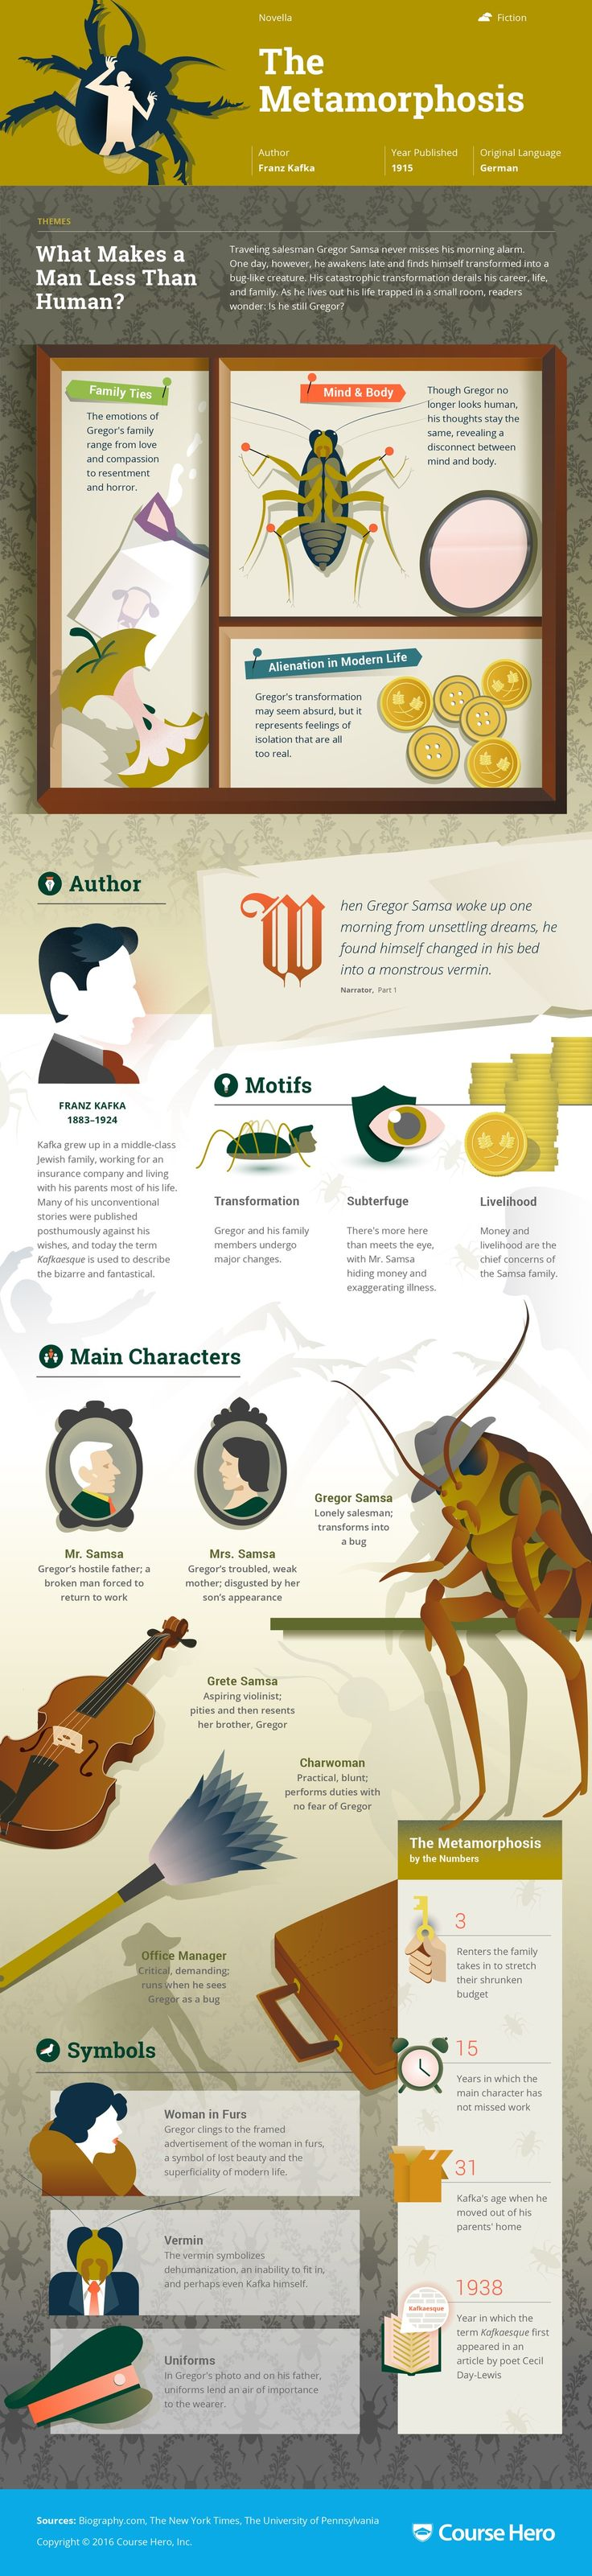 The Metamorphosis Infographic | Course Hero